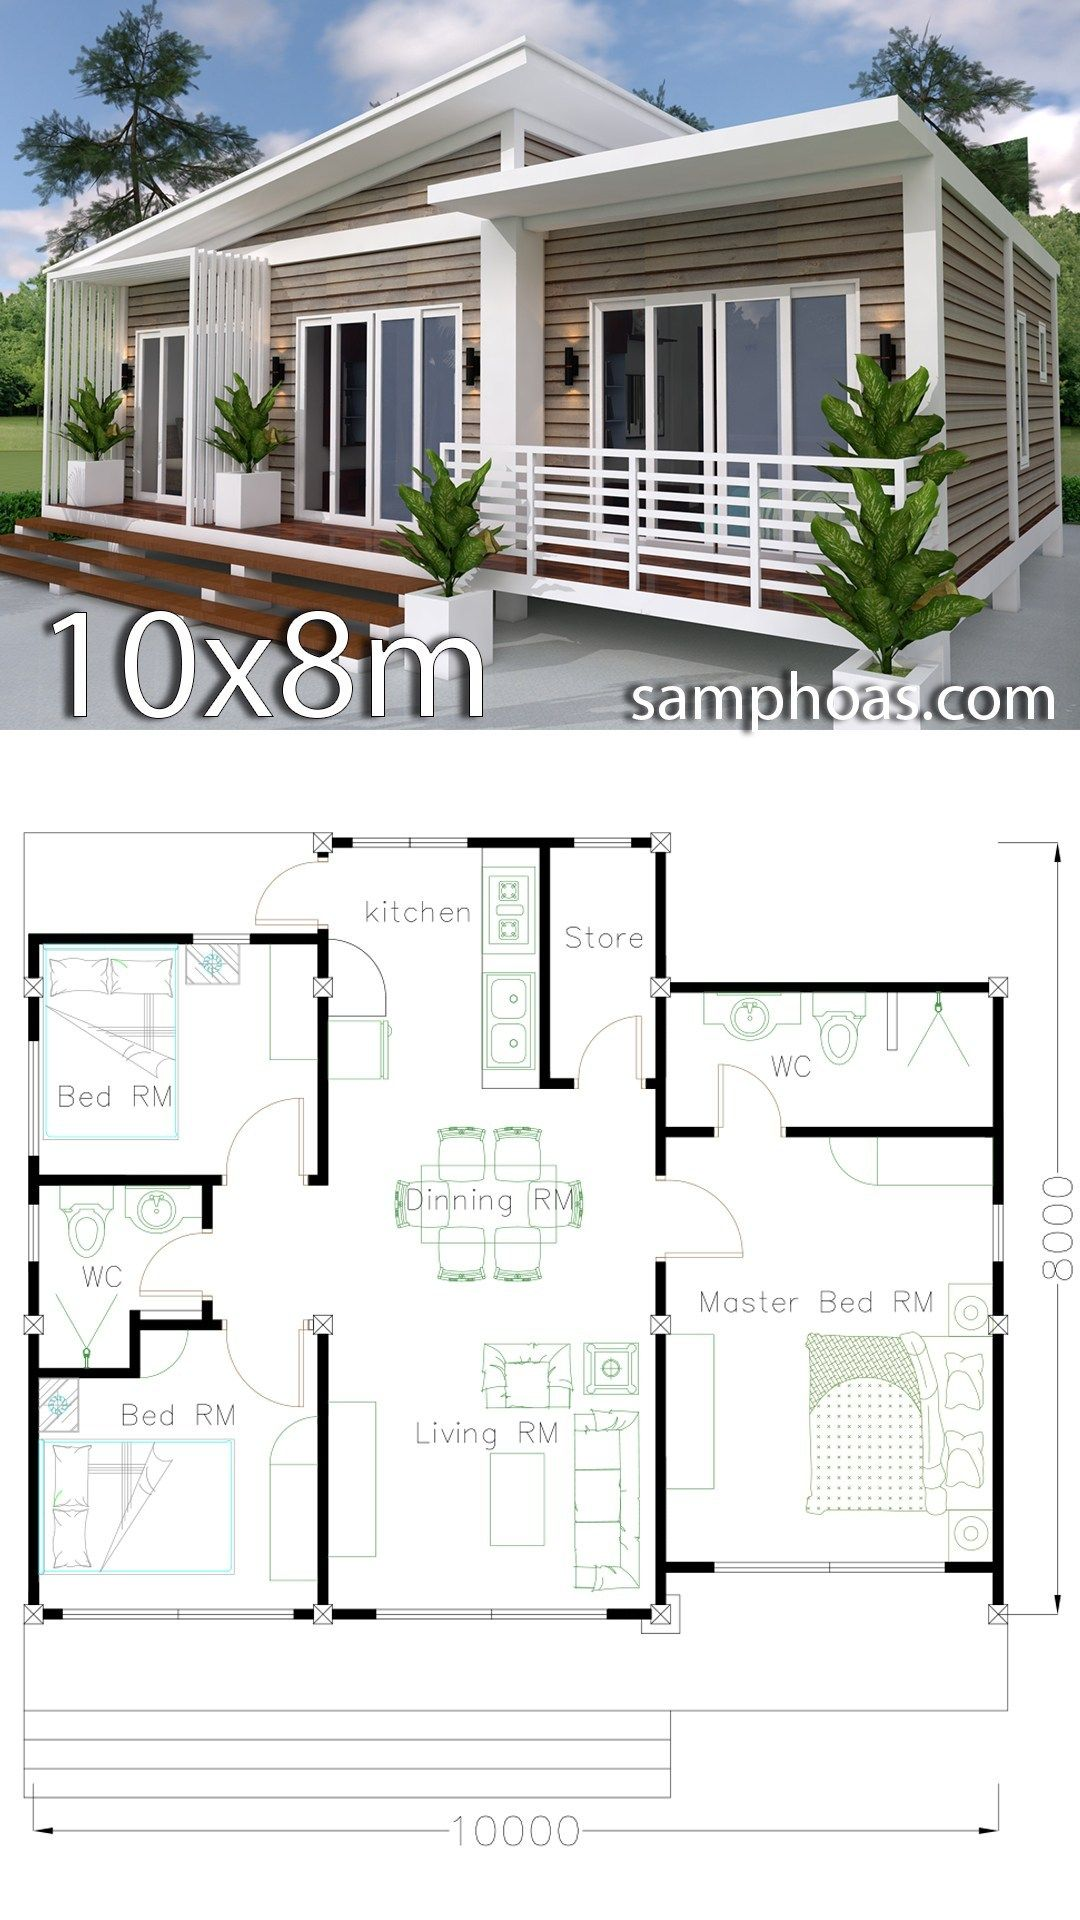 Home Design Plan 10x8m 3 Bedrooms With Interior Design Samphoas Plansearch Architecture House Home Design Plan Home Design Plans